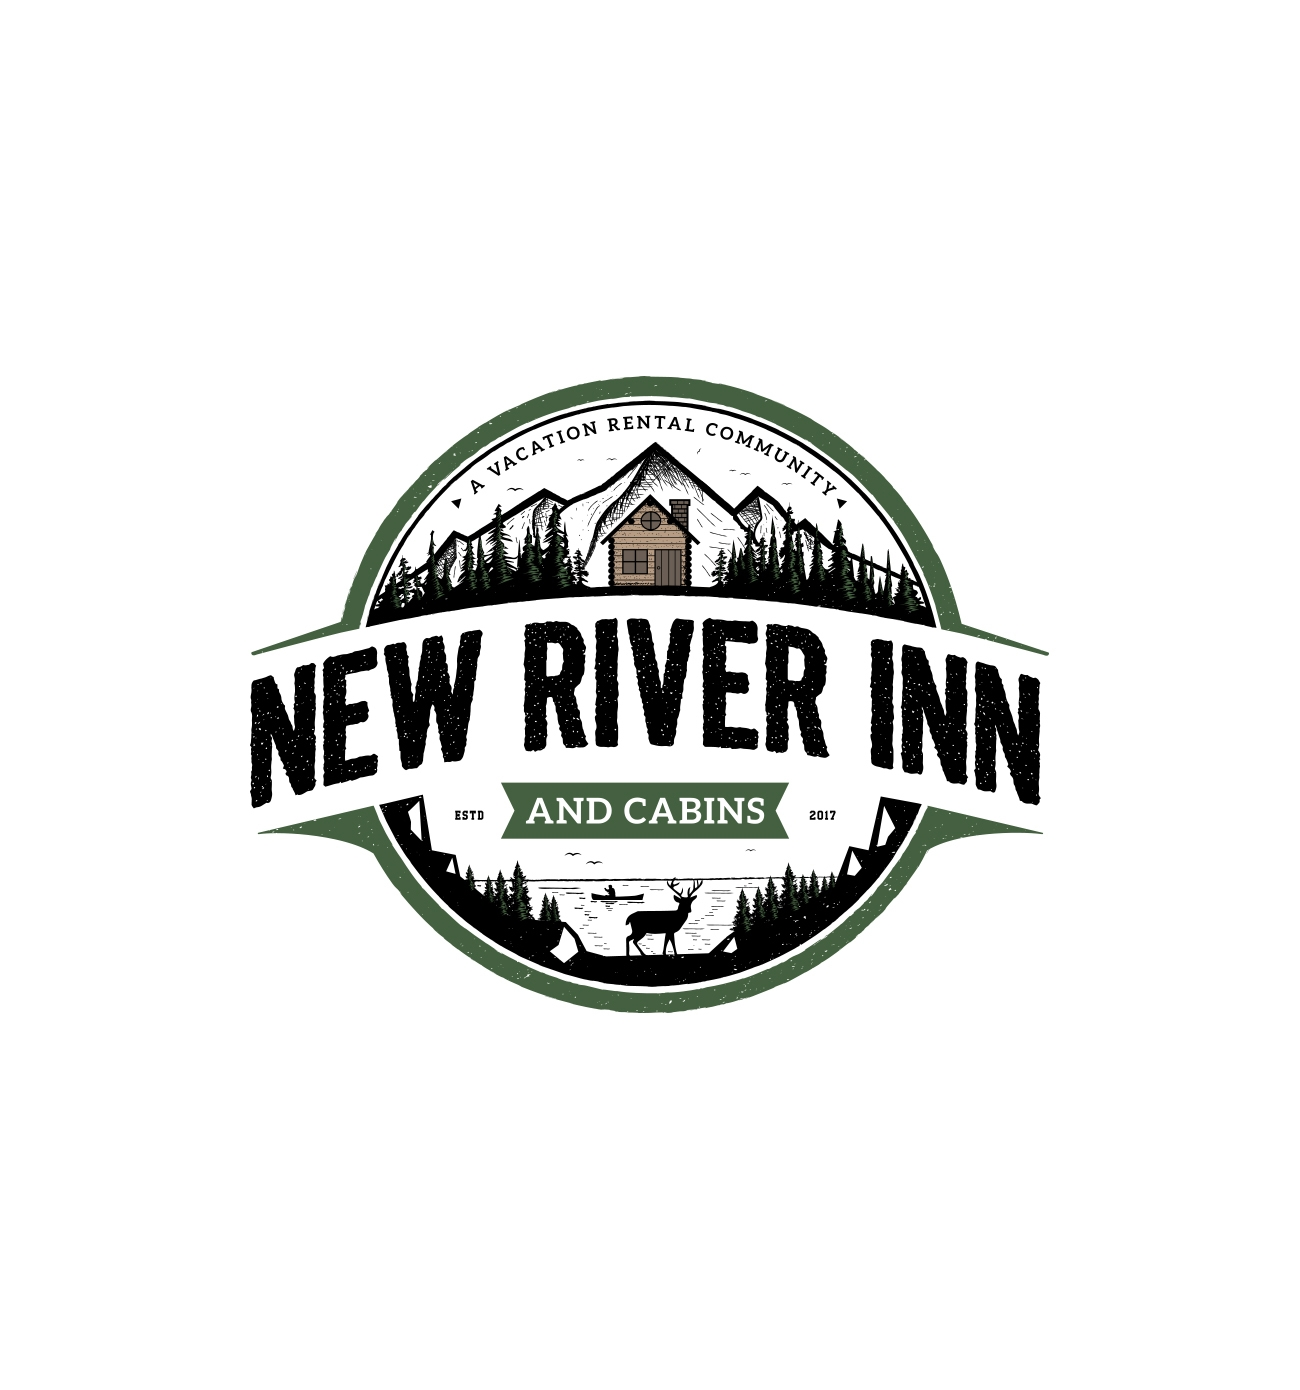 New River Inn & Cabins logo